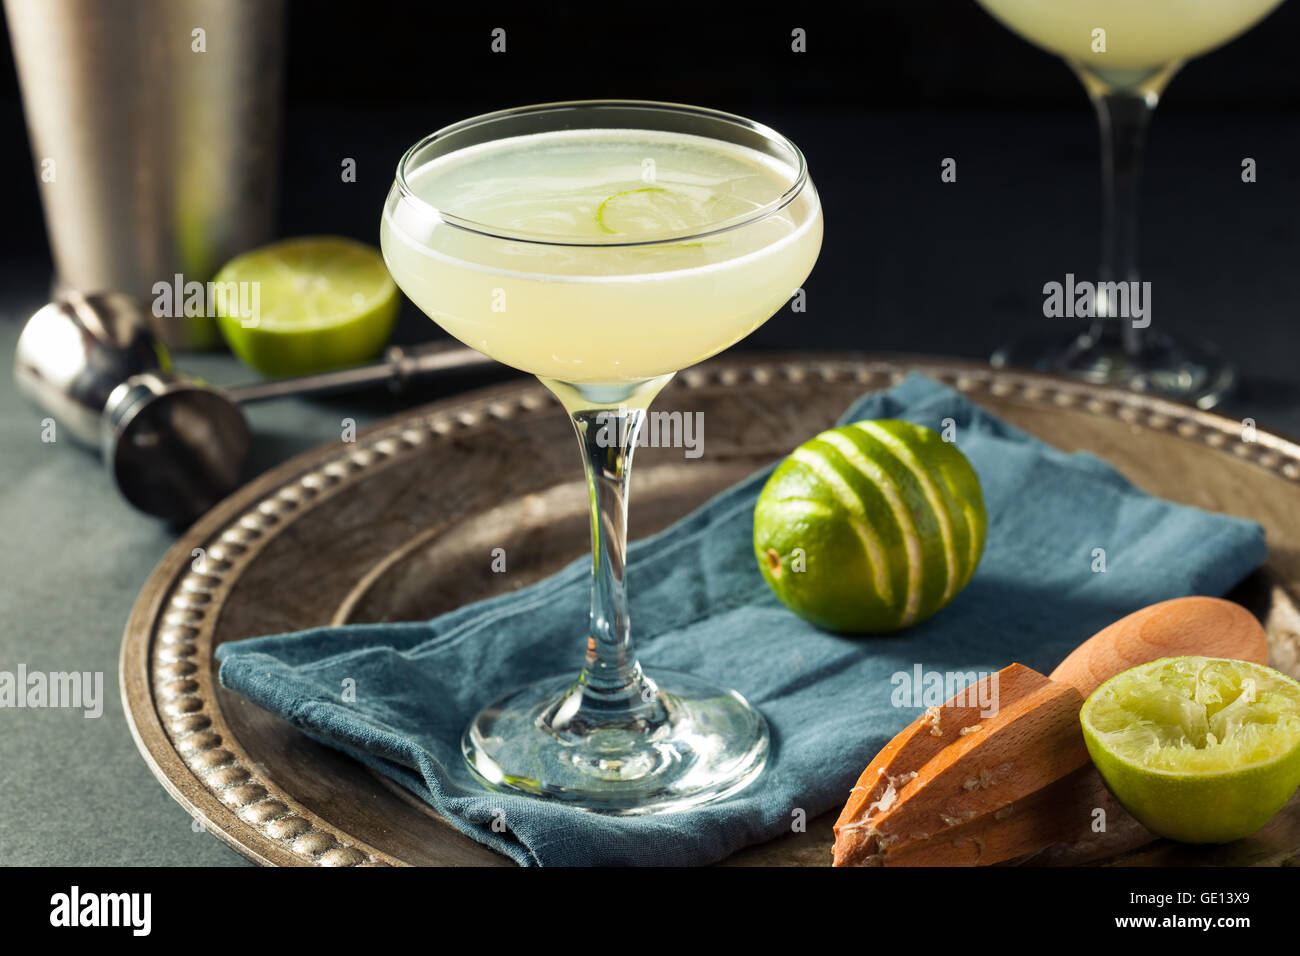 Alcoholic Lime and Gin Gimlet with a Garnish - Stock Image